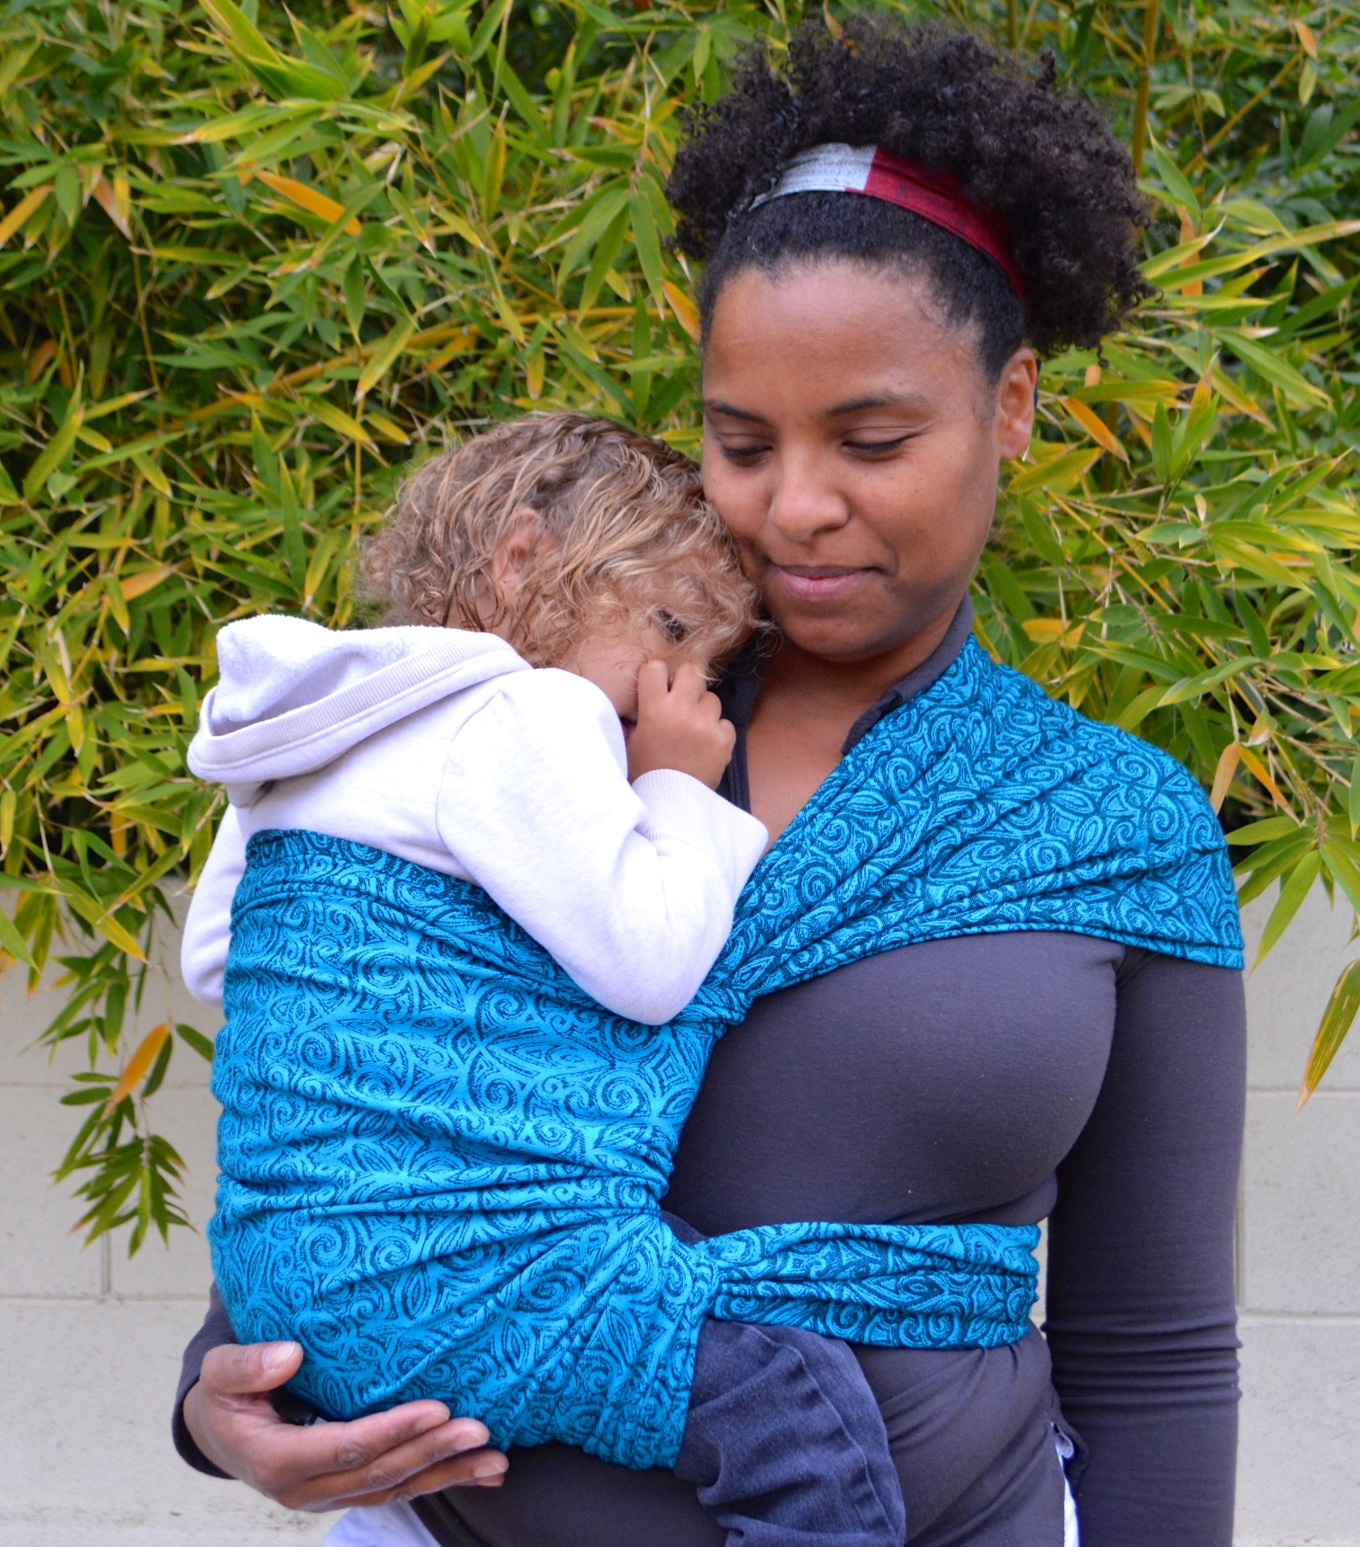 Medium brown momma with natural curly hair wears light brown blond haired toddler on her hip in a turquoise wrap with repeating small swirls pattern. The wrap is spread across the shoulder and reinforced across baby's back and bottom.